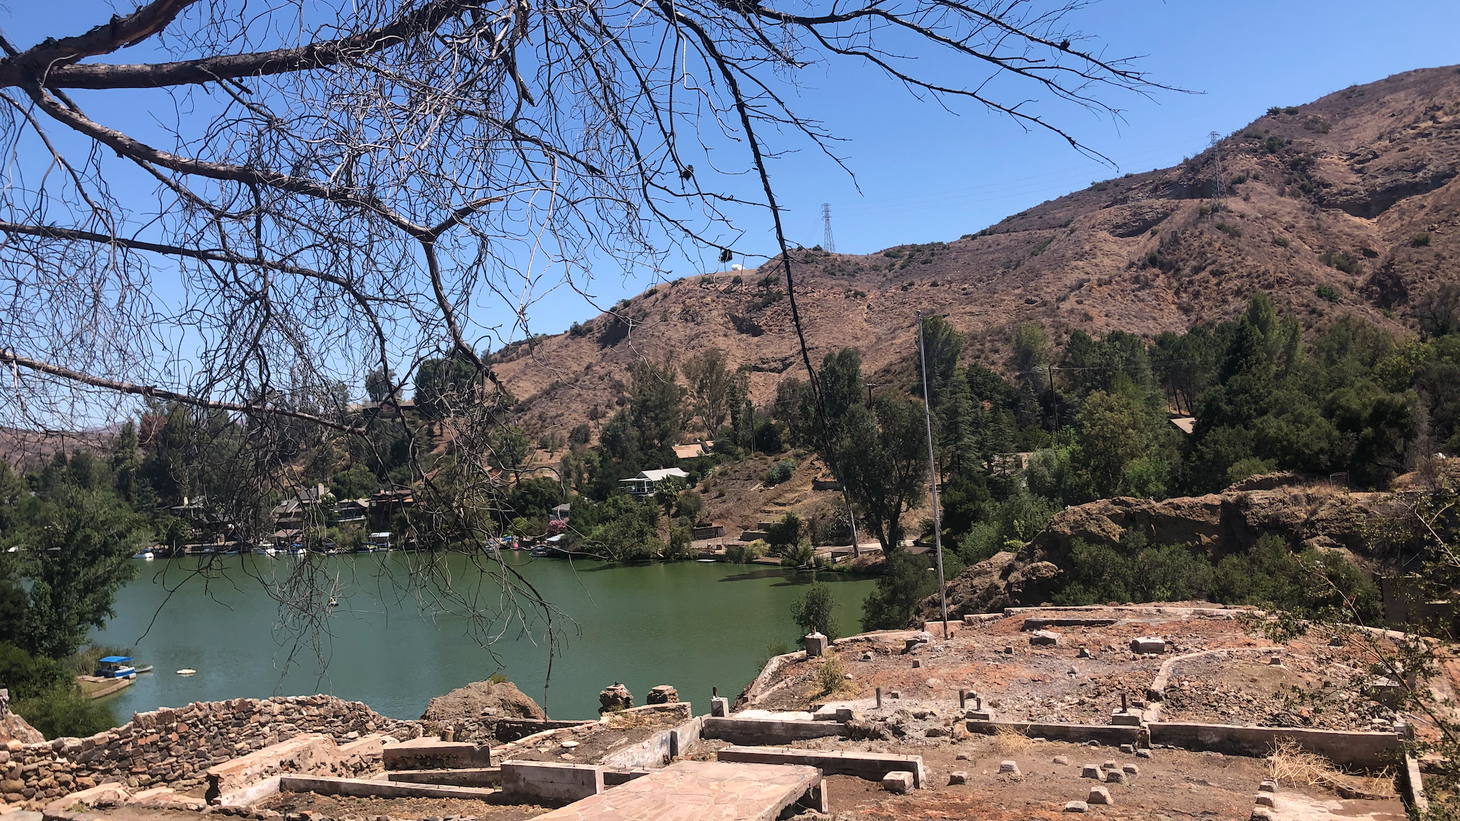 This home burned down in the Woolsey Fire. The lot is for sale, but few people have shown interest in buying it.